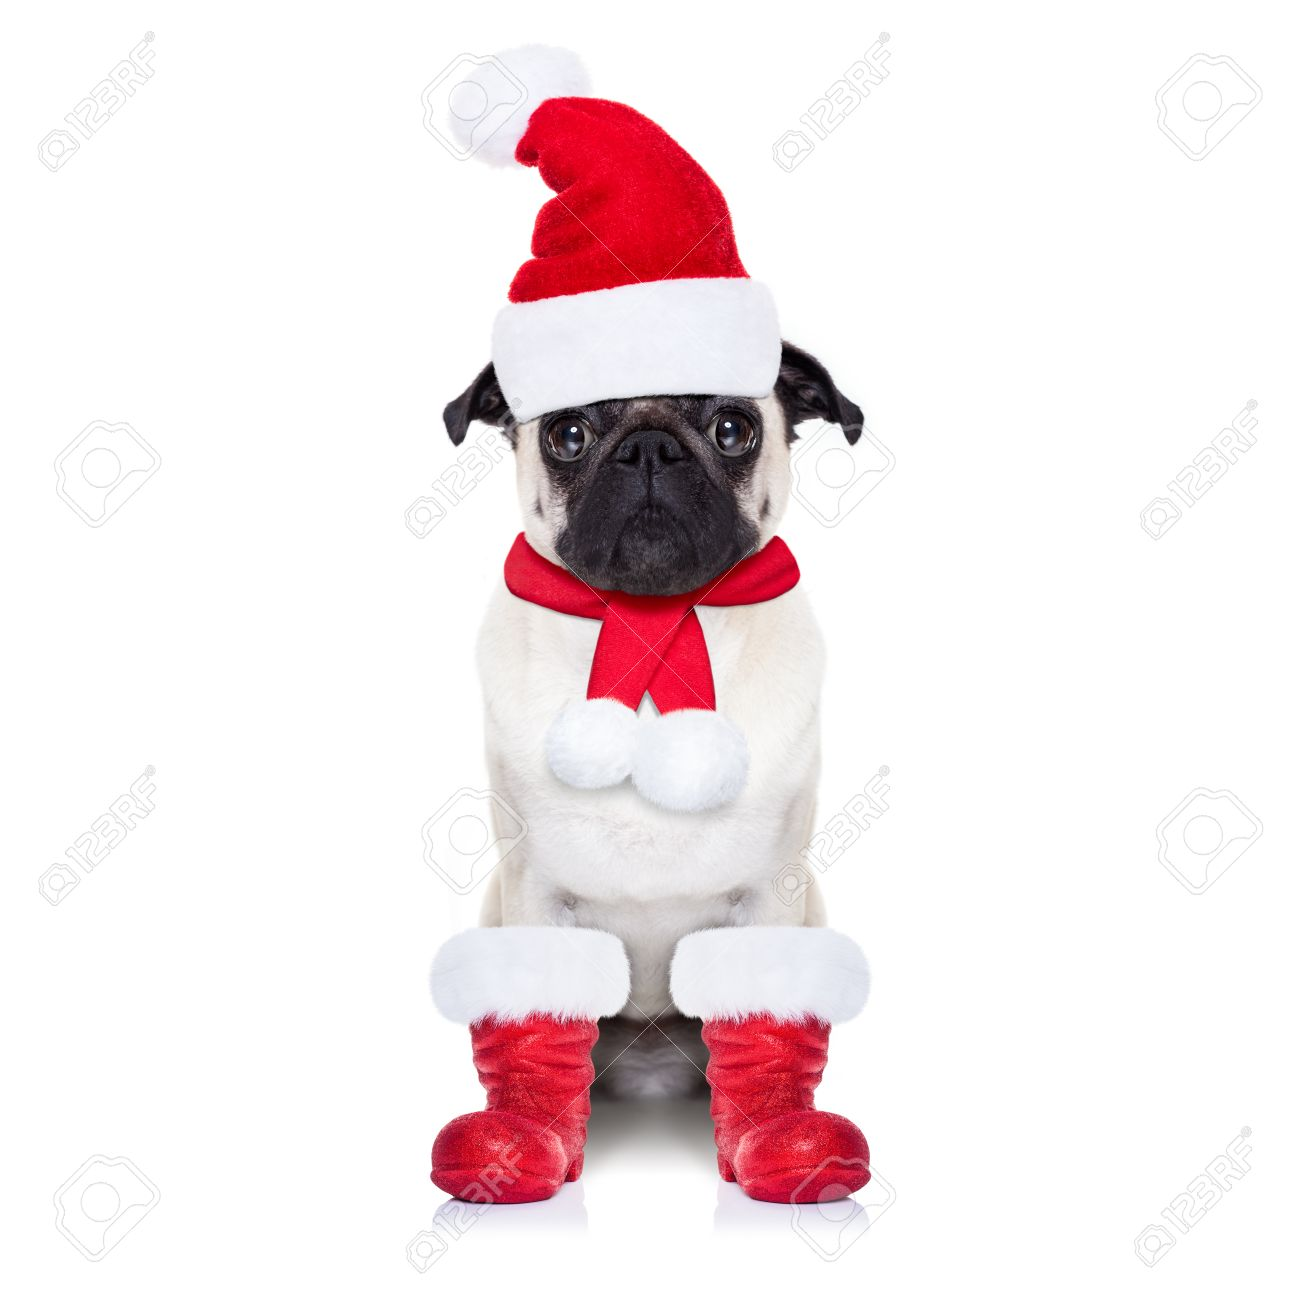 Pug Dog As Santa Claus With Red Boots, For Christmas Holidays ...